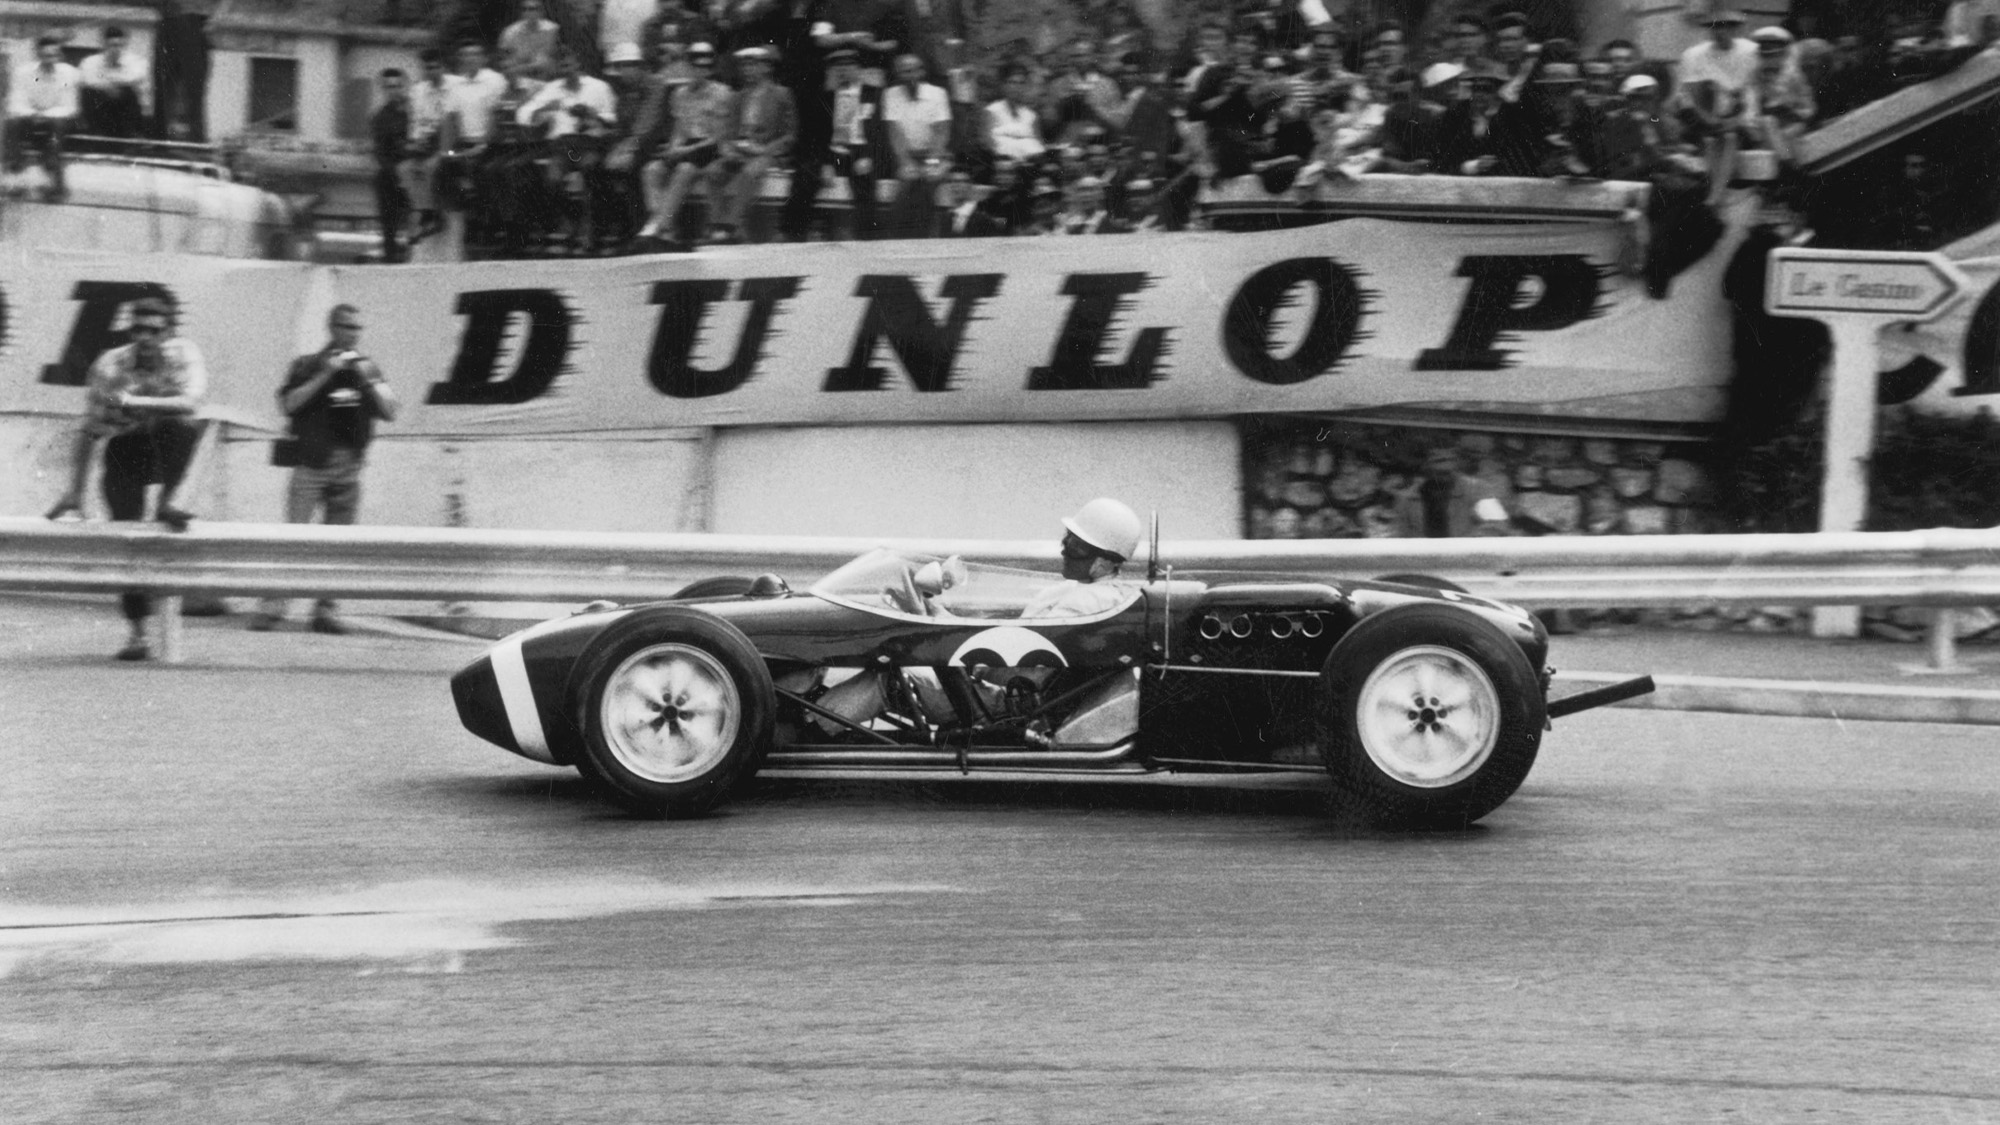 Stirling Moss Lotus 18 in the 1961 Monaco Grand Prix with removed side panels